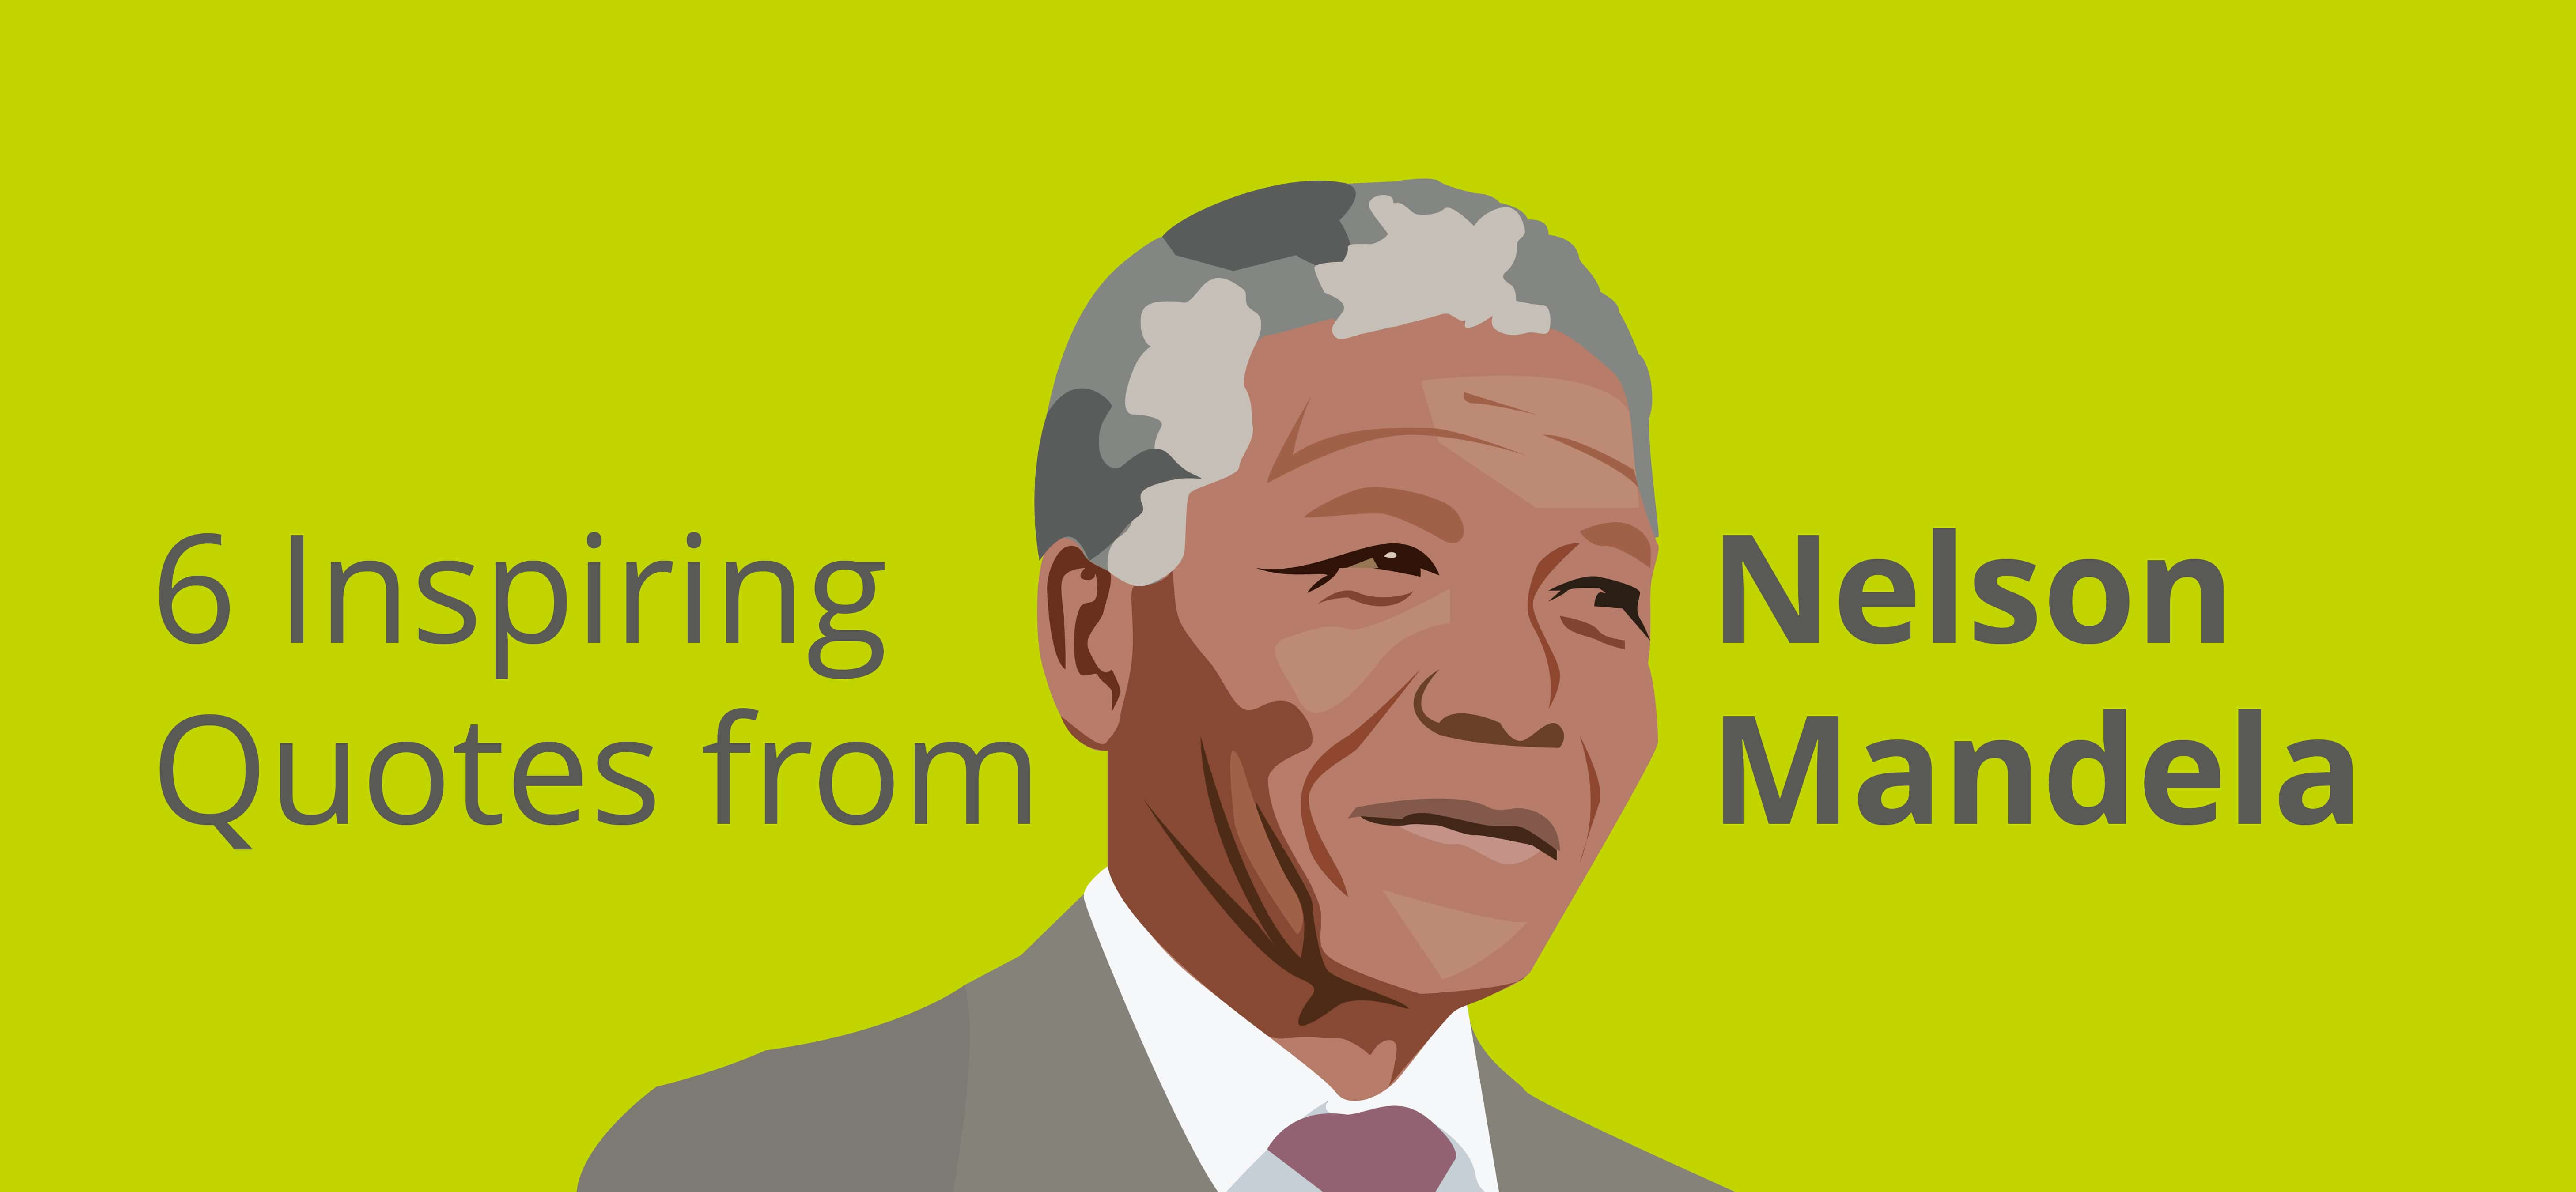 Quotes Nelson Mandela 6 Inspiring Quotes From Nelson Mandela  Faithcounts